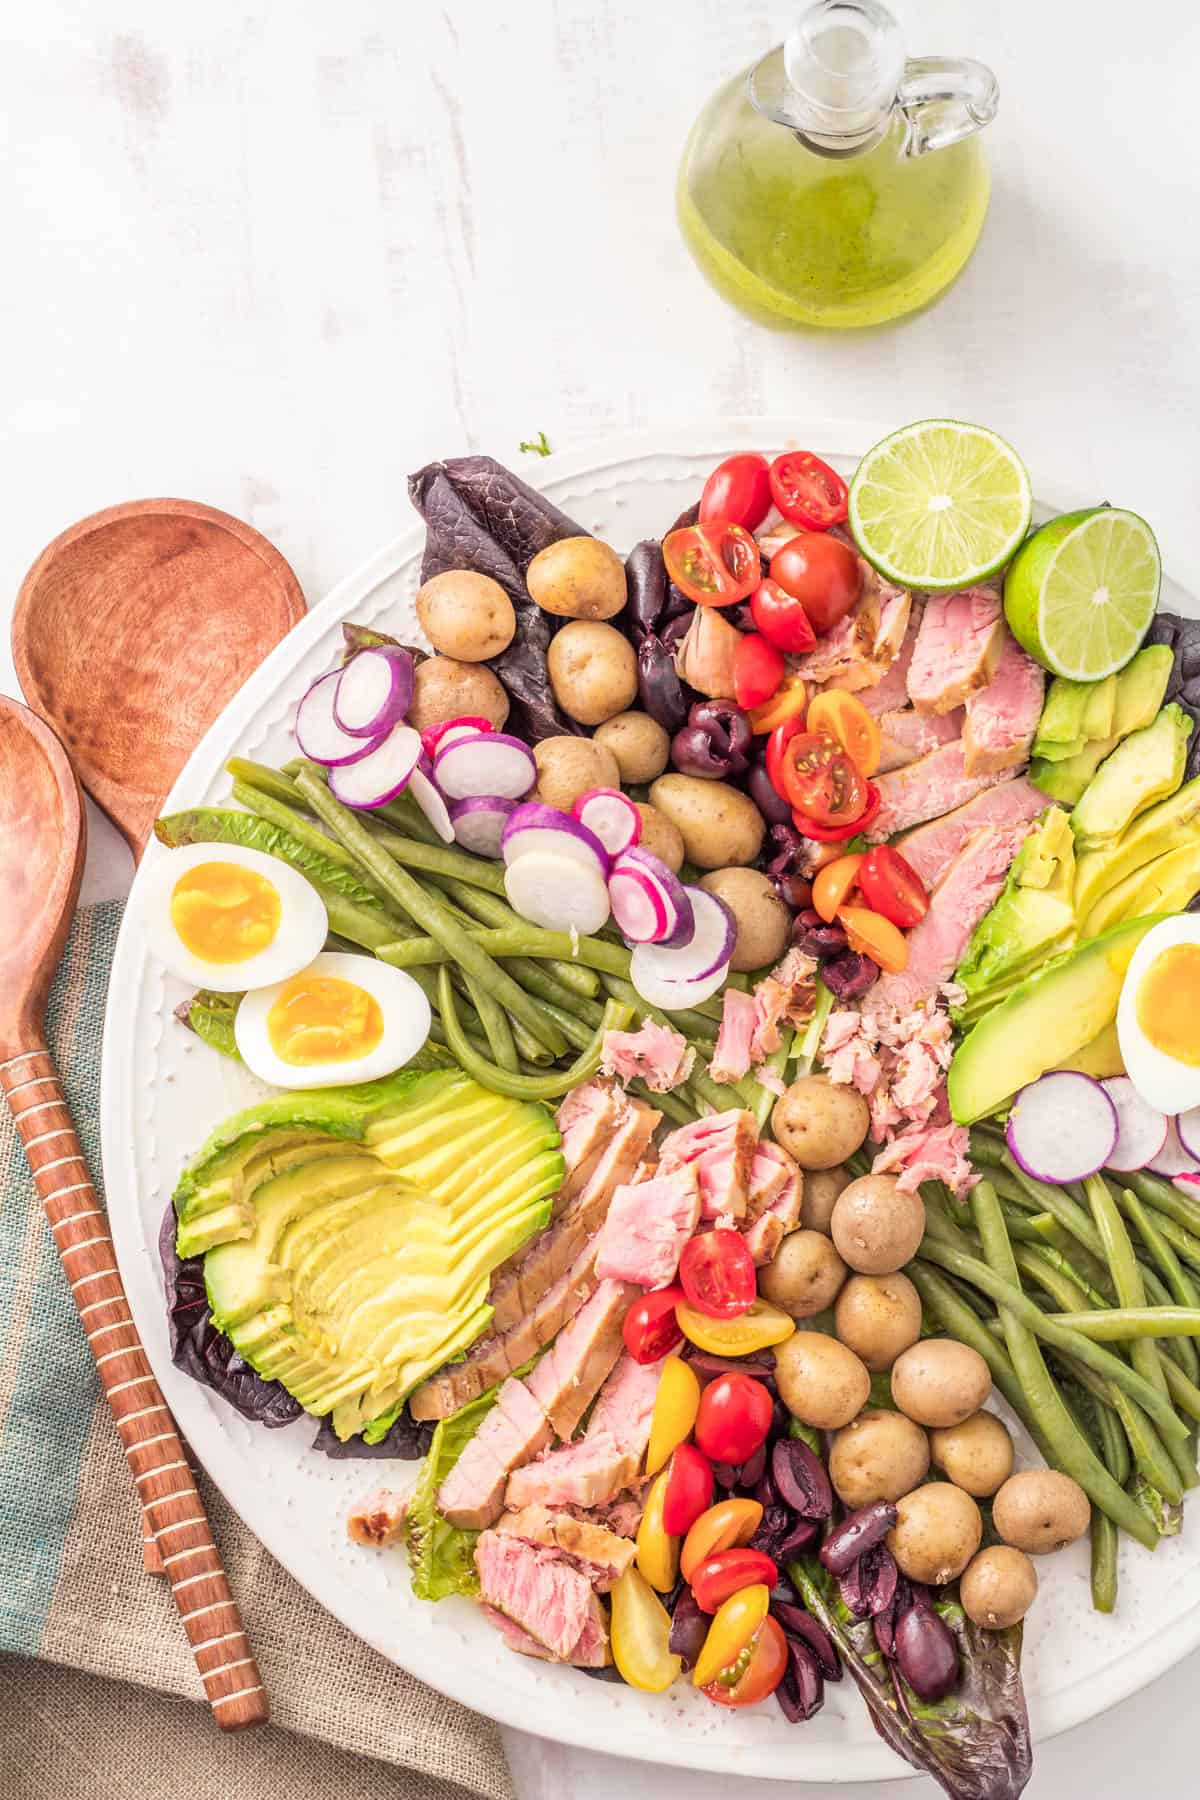 A large white platter with seared tuna, tomatoes, potatoes, green beans, radishes, soft boiled eggs, olives.